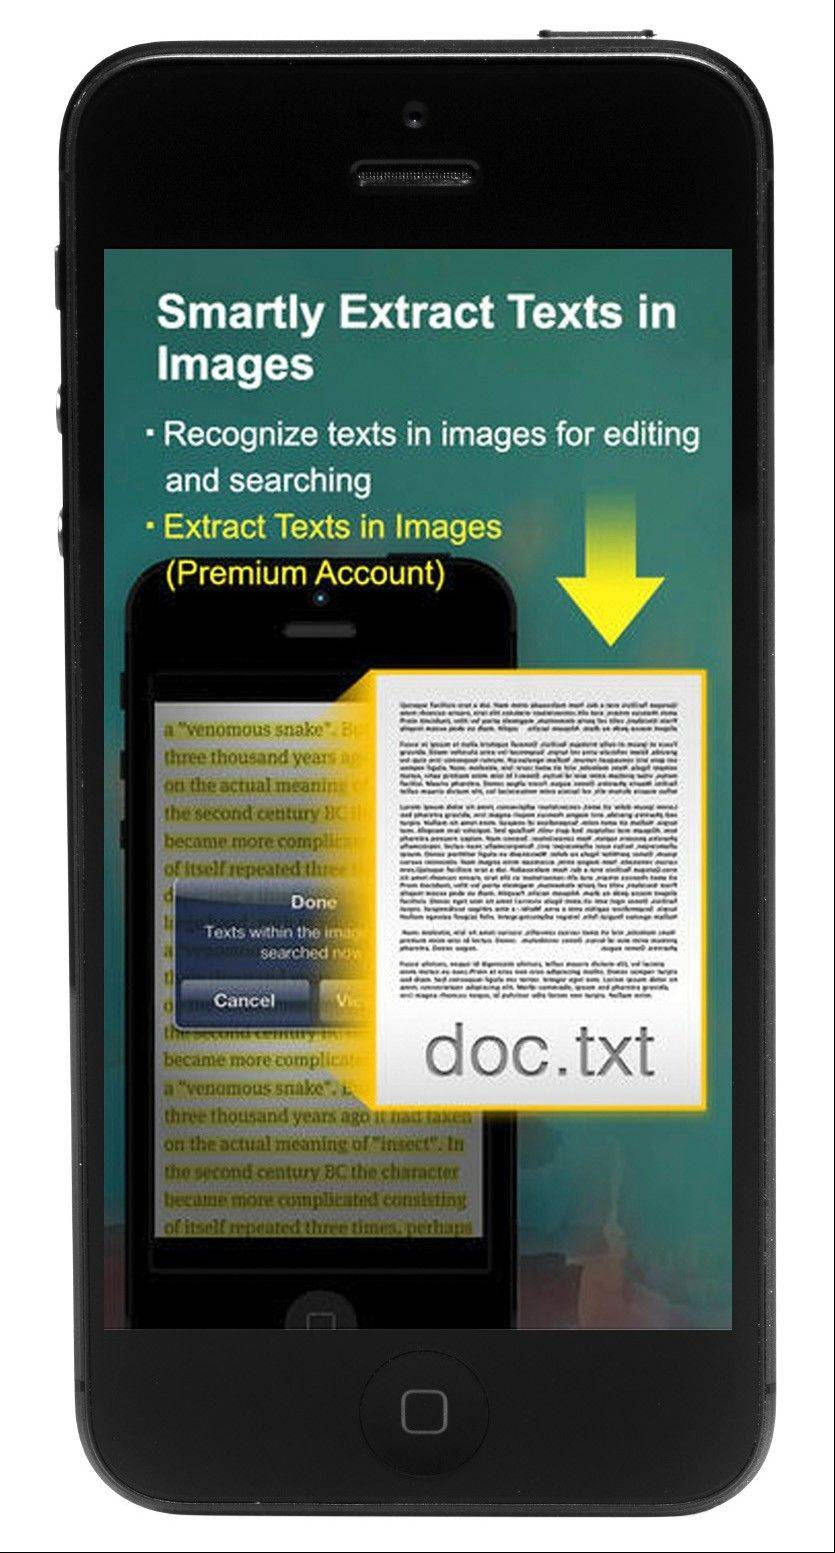 The CamScanner app can scan documents by taking a picture with a camera phone and save them as PDF files.